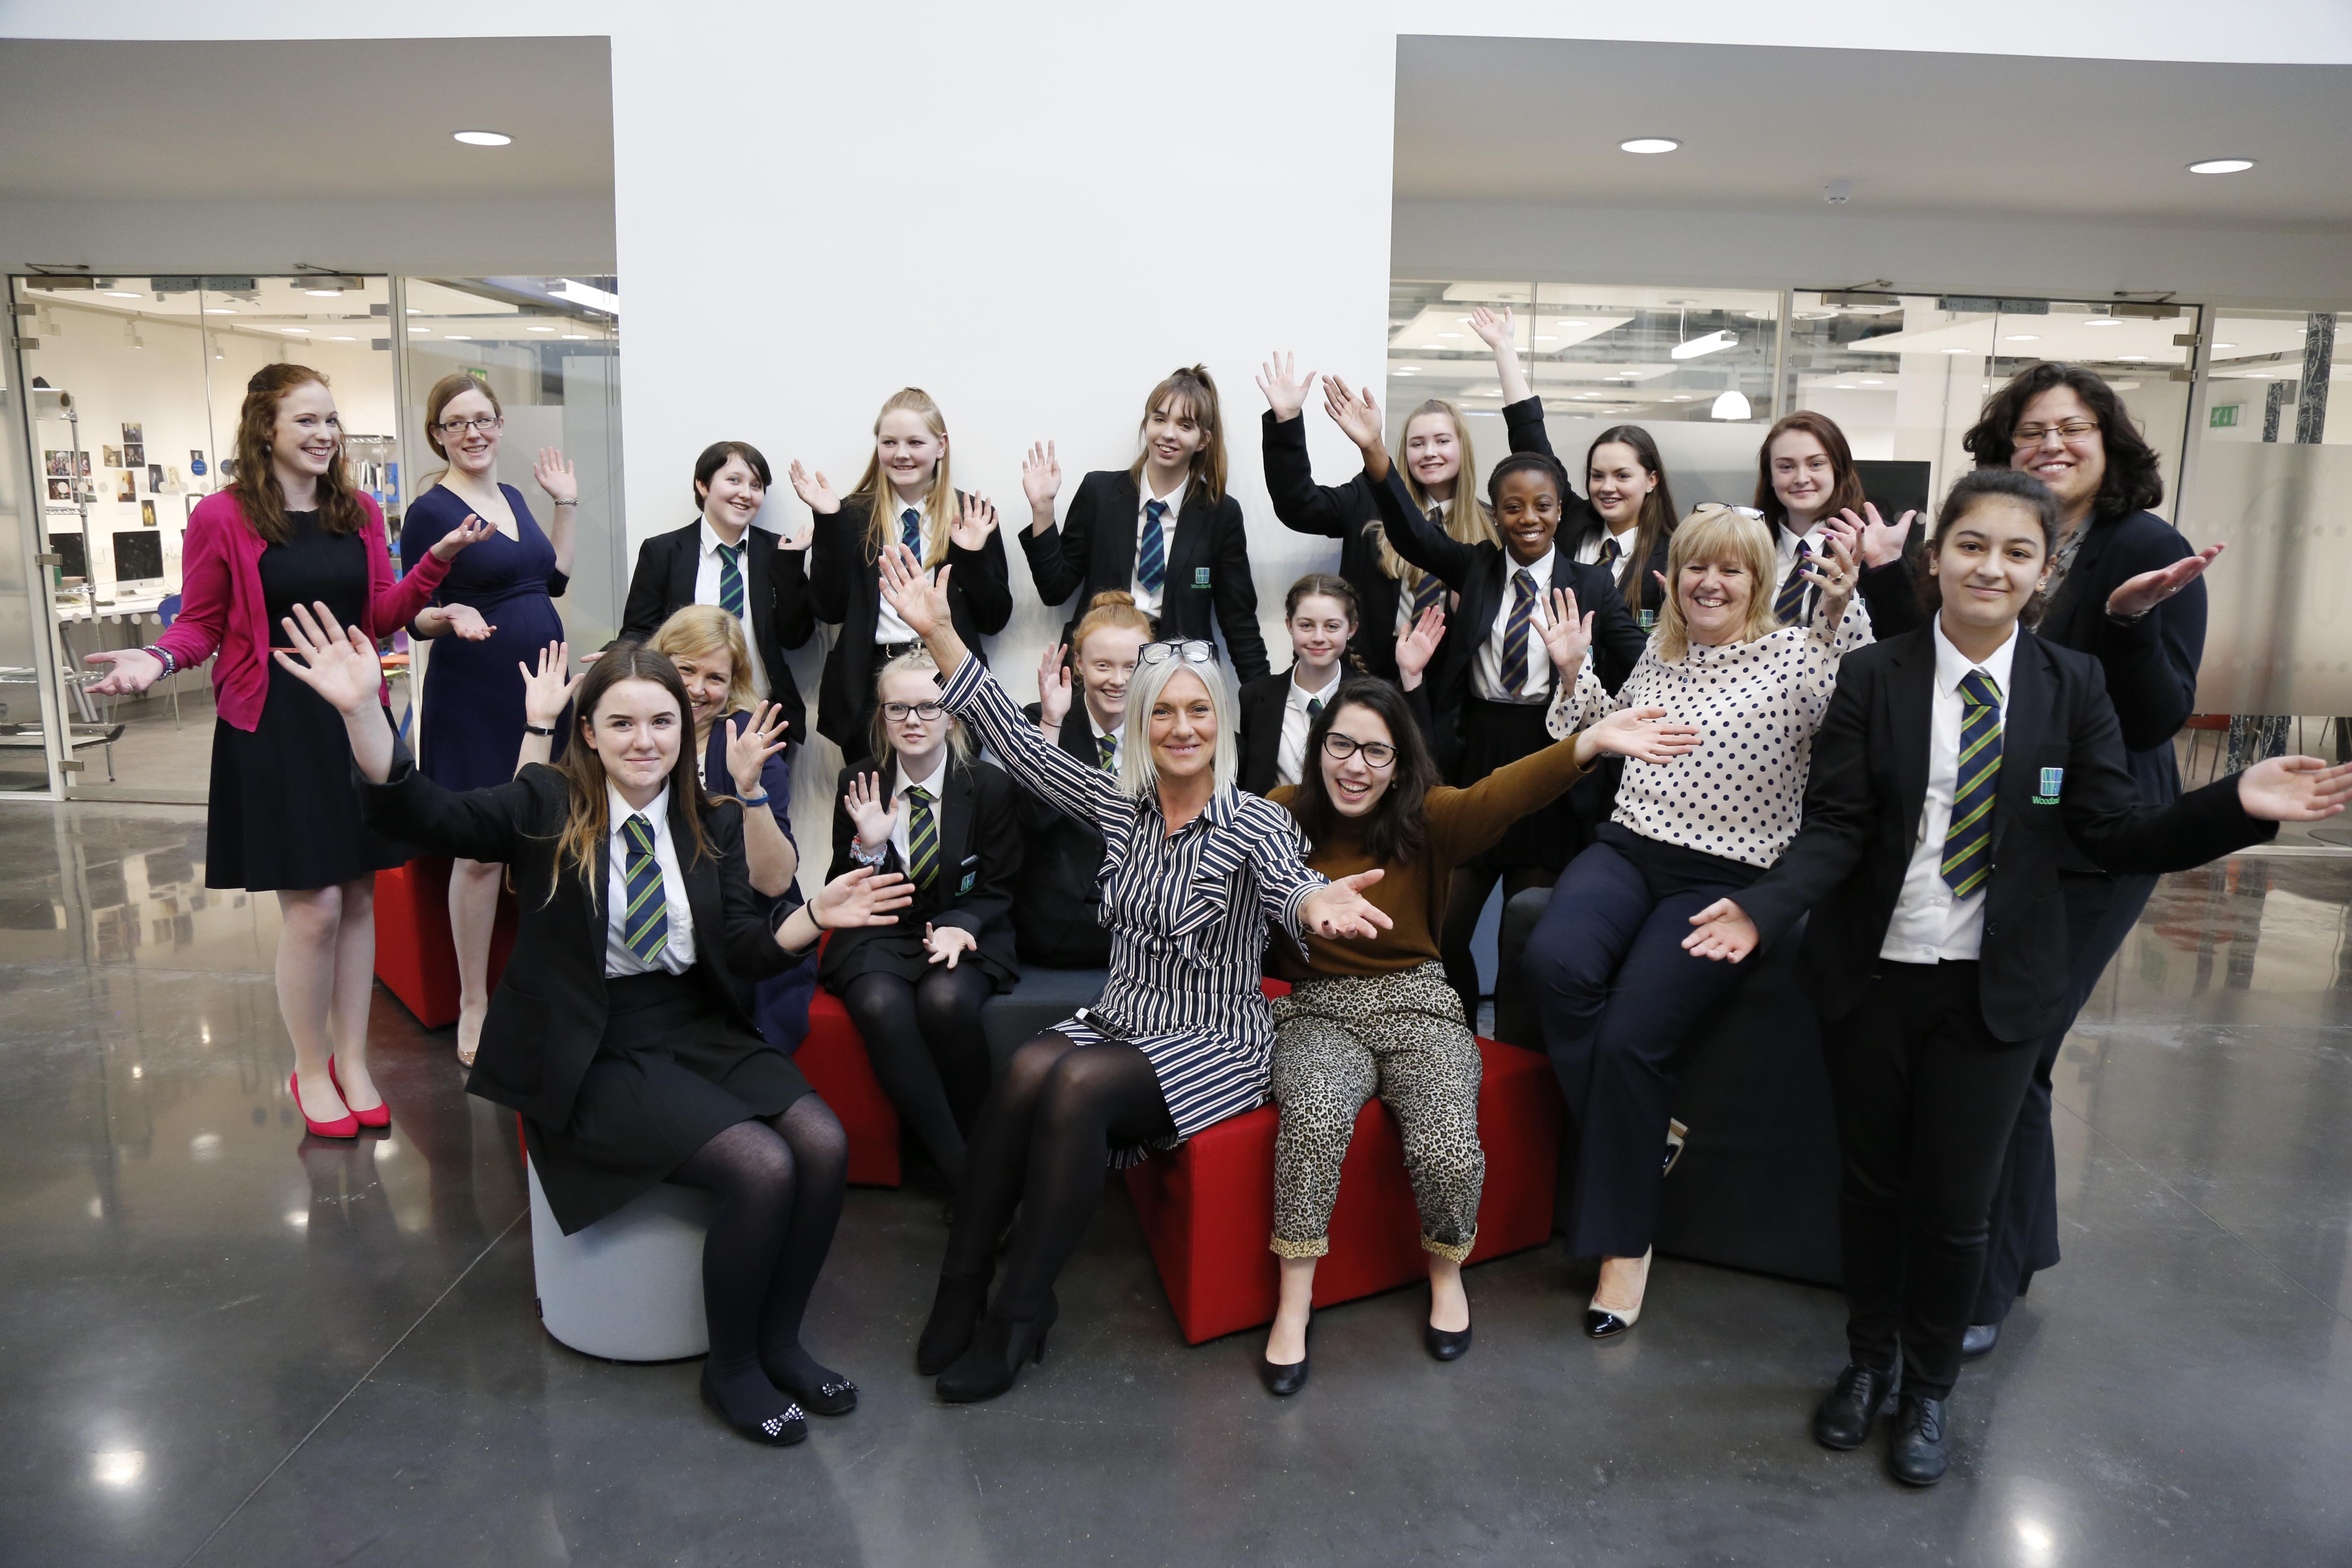 WOMEN IN BUSINESS SPEED NETWORKING AND SKILLS SESSION AT THE SPARKS BUILDING SOUTHAMPTON.   WOODLANDS COMMUNITY COLLEGE PUPILS WITH BUSINESS WOMEN L-R Zoe White, Georgianna Rustell, Gemma Lacey, Kate Hibbert, Angela Djukanovic, Bev Wyatt and Loanna Creese